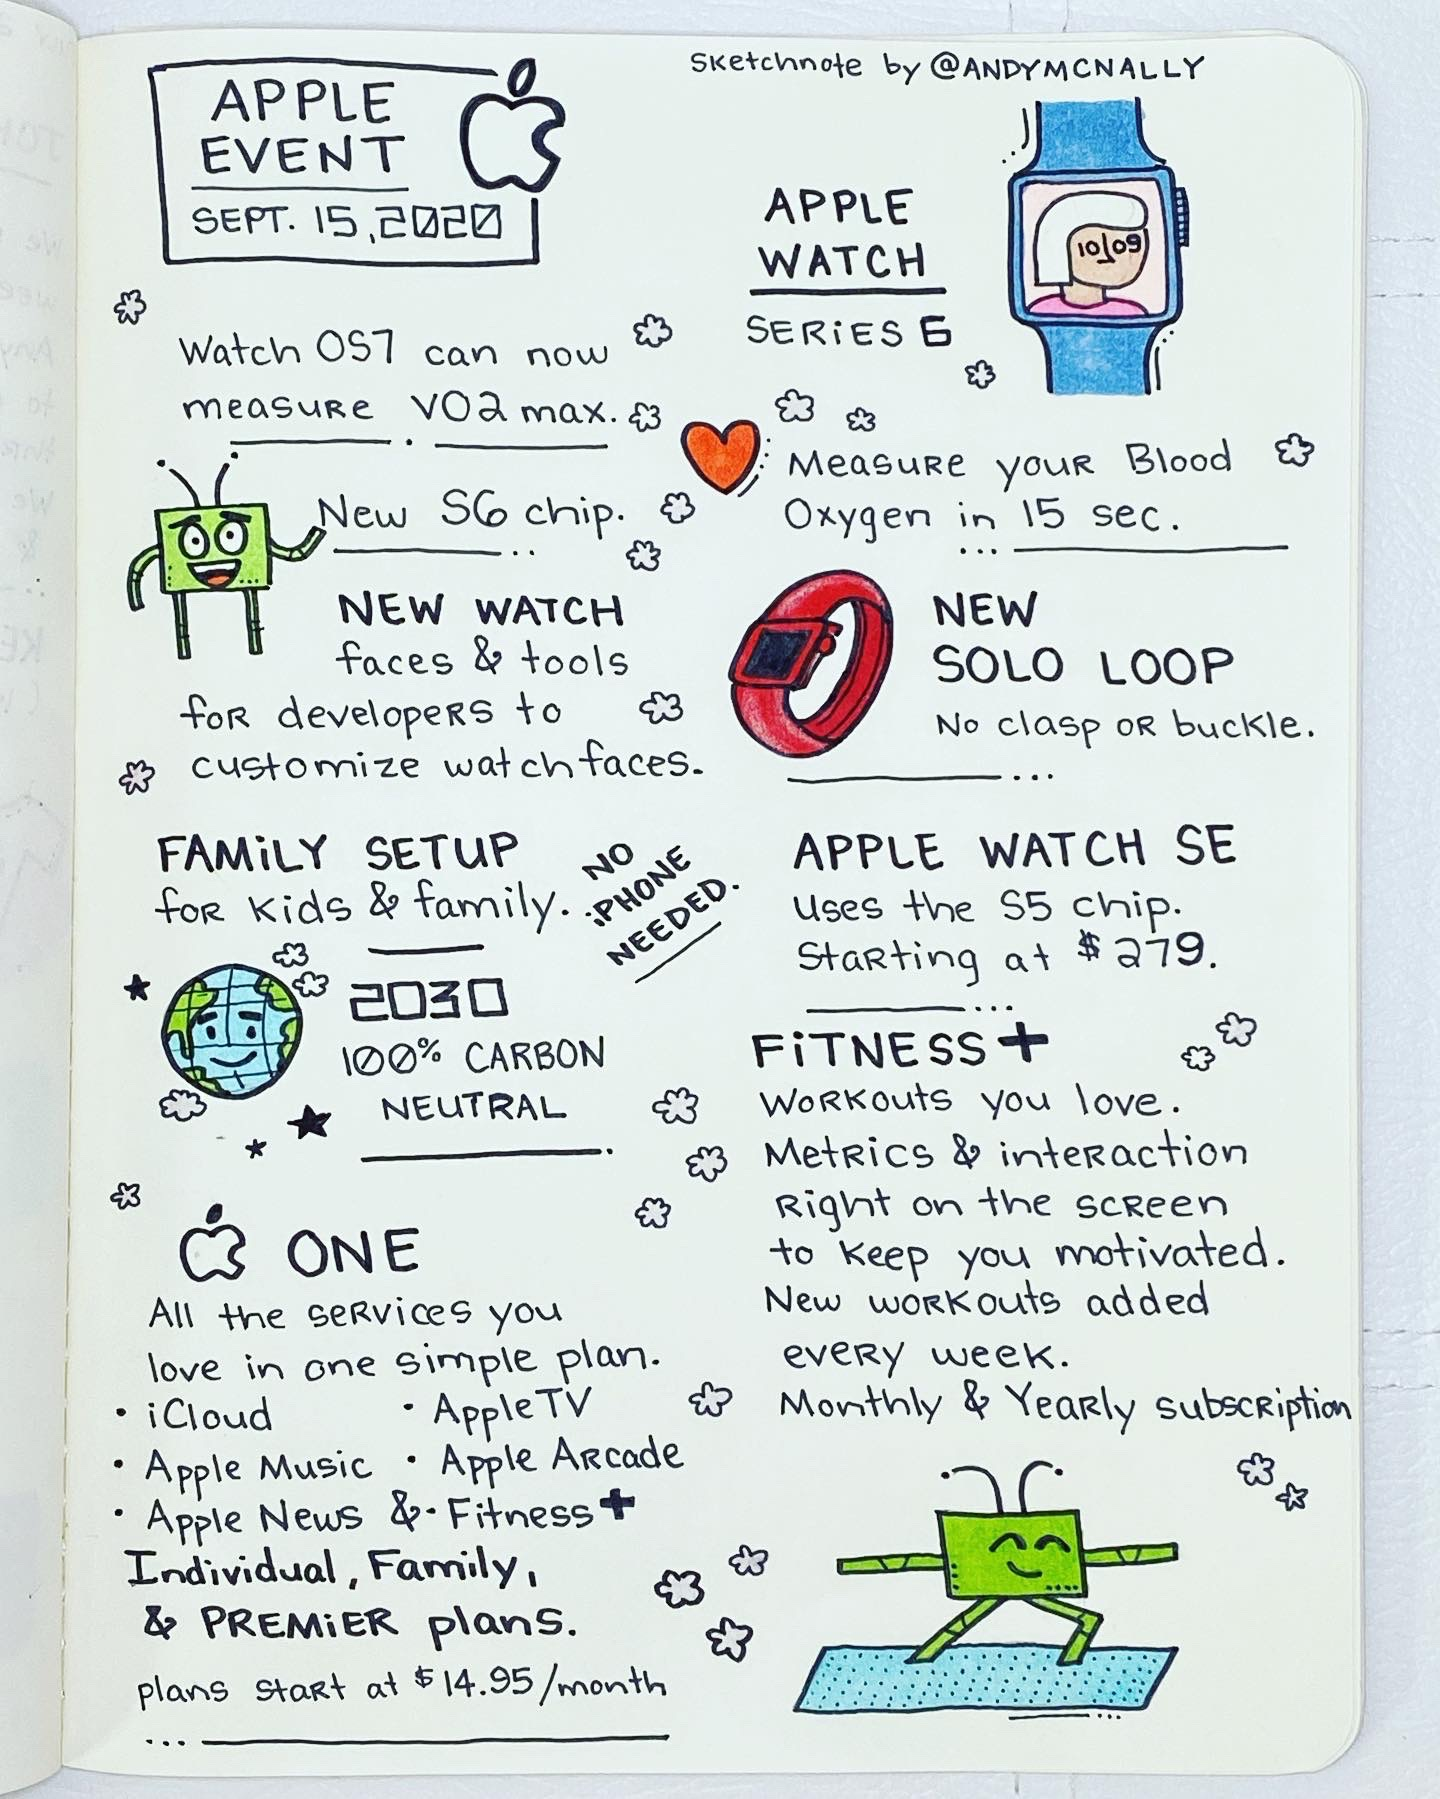 Apple Event September 2020  sketchnote  1 of 2